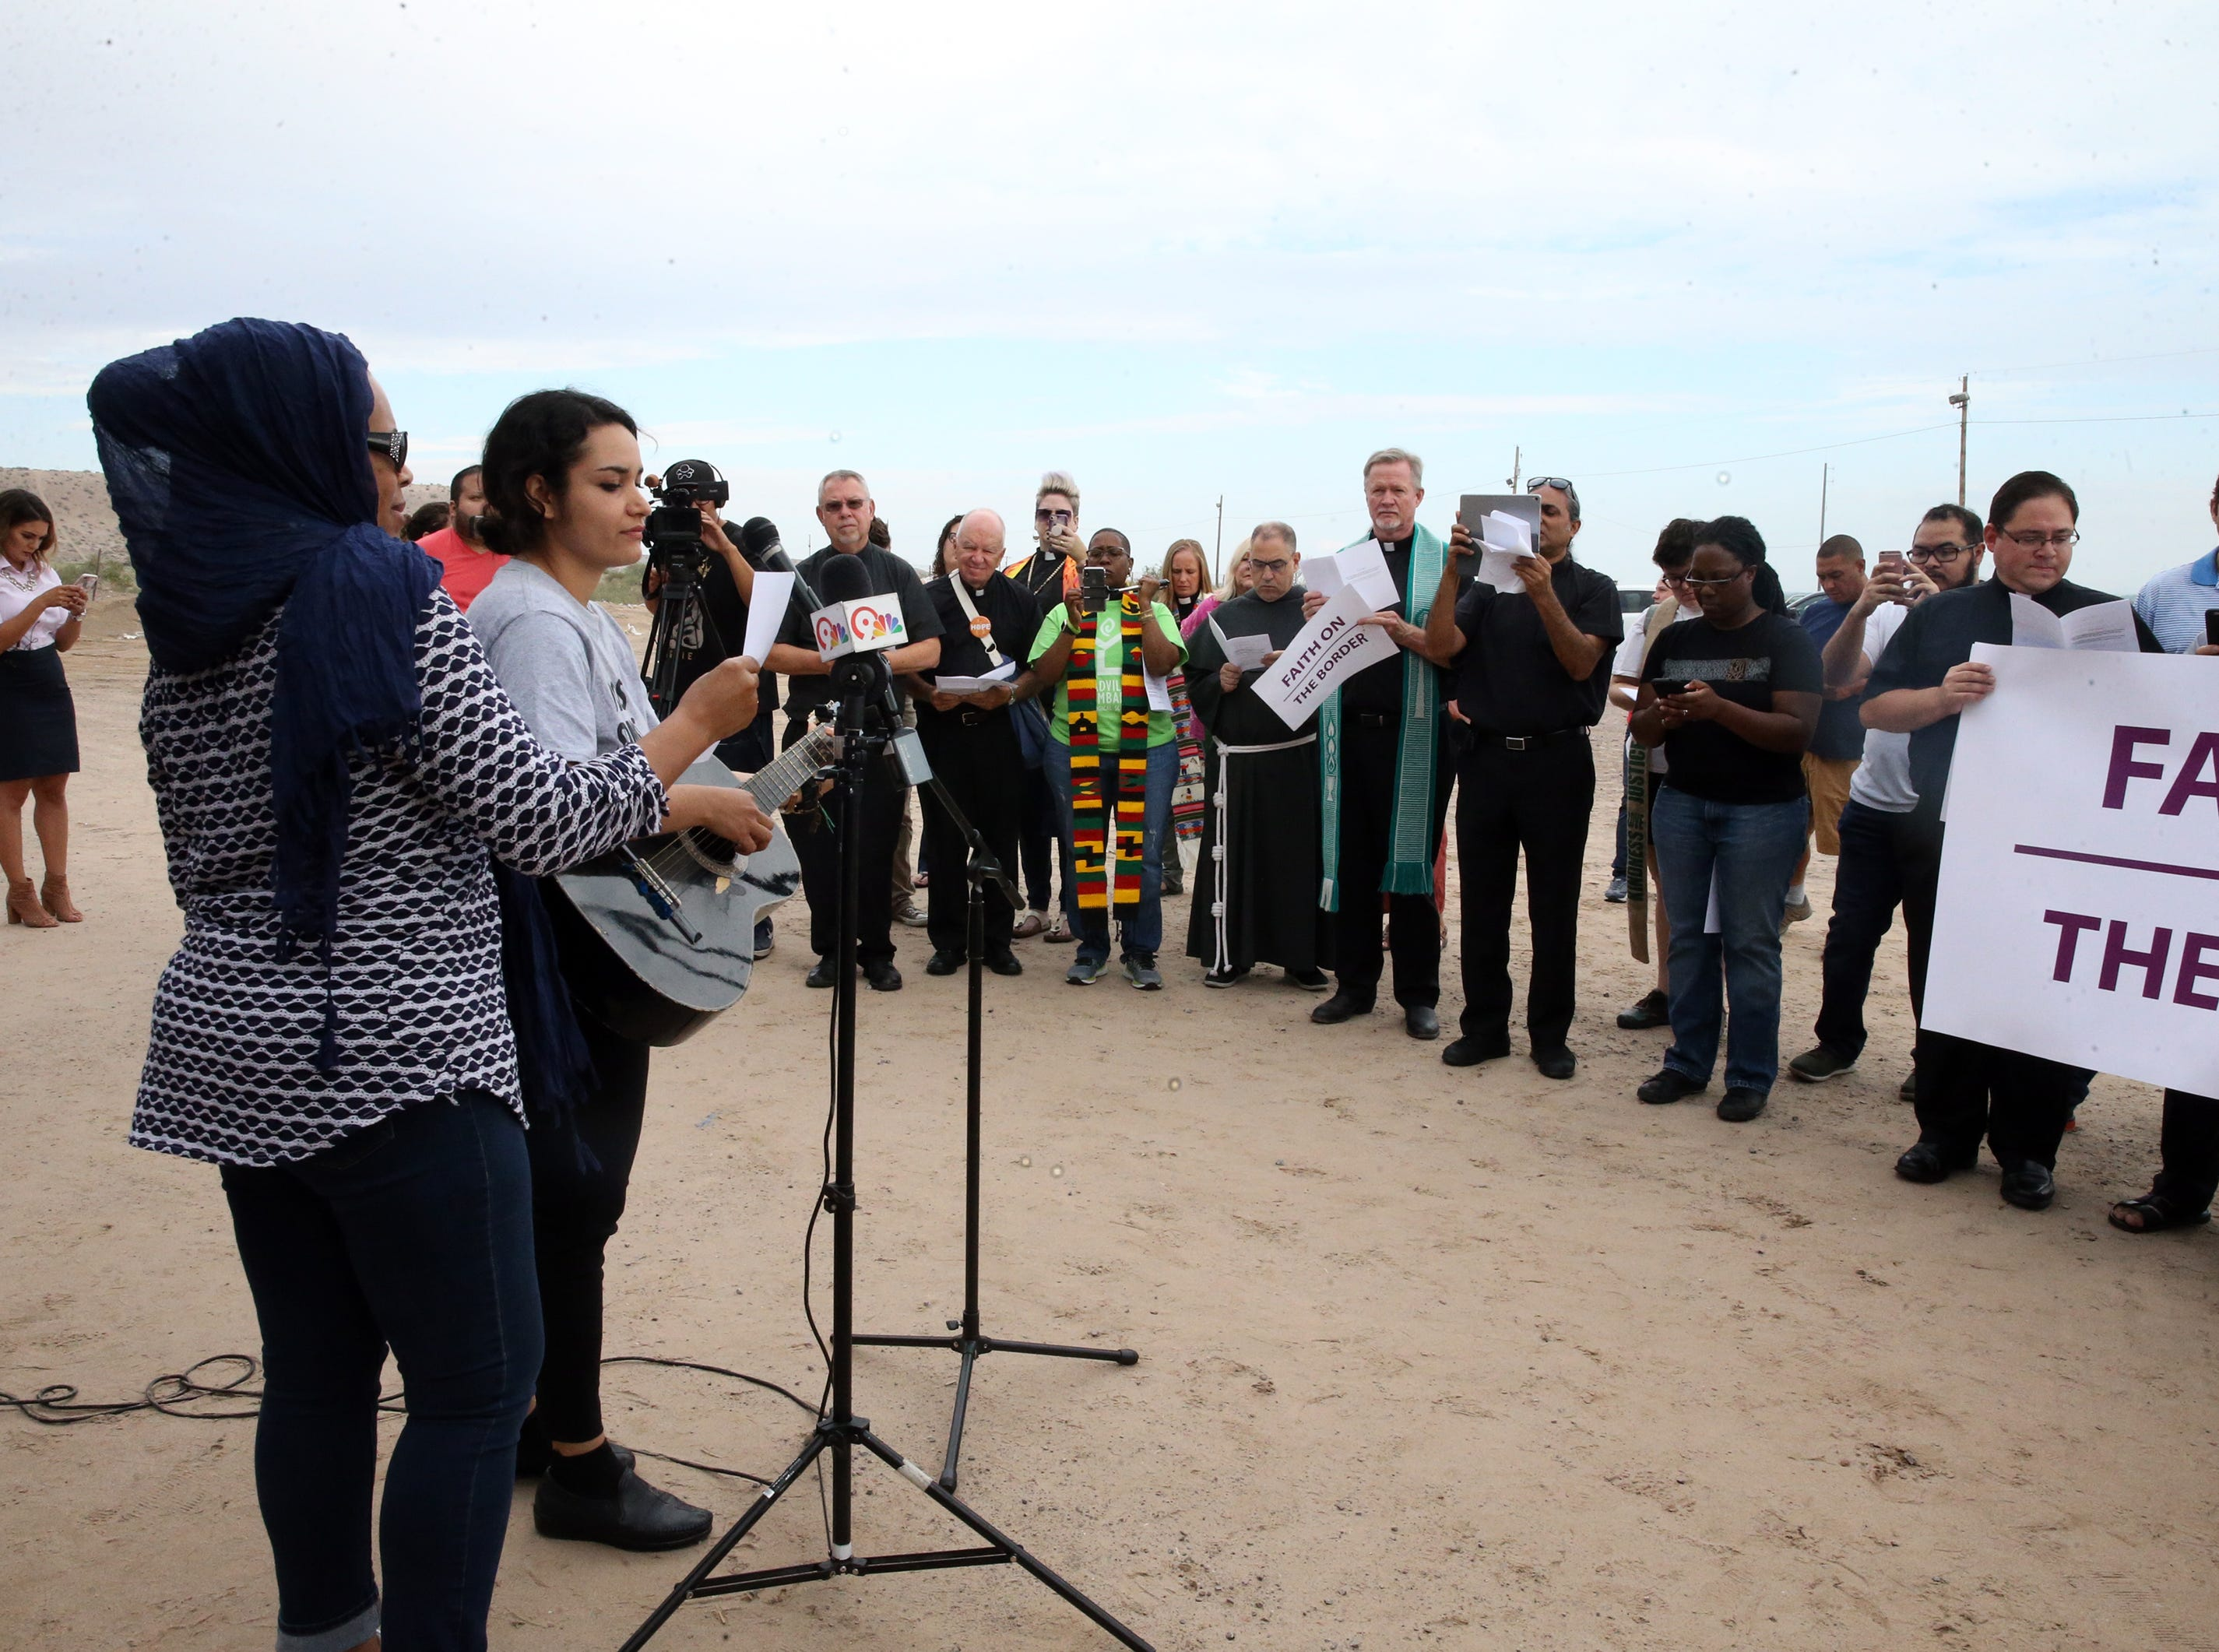 An interfaith group on both sides of the border fence listen to music Friday.